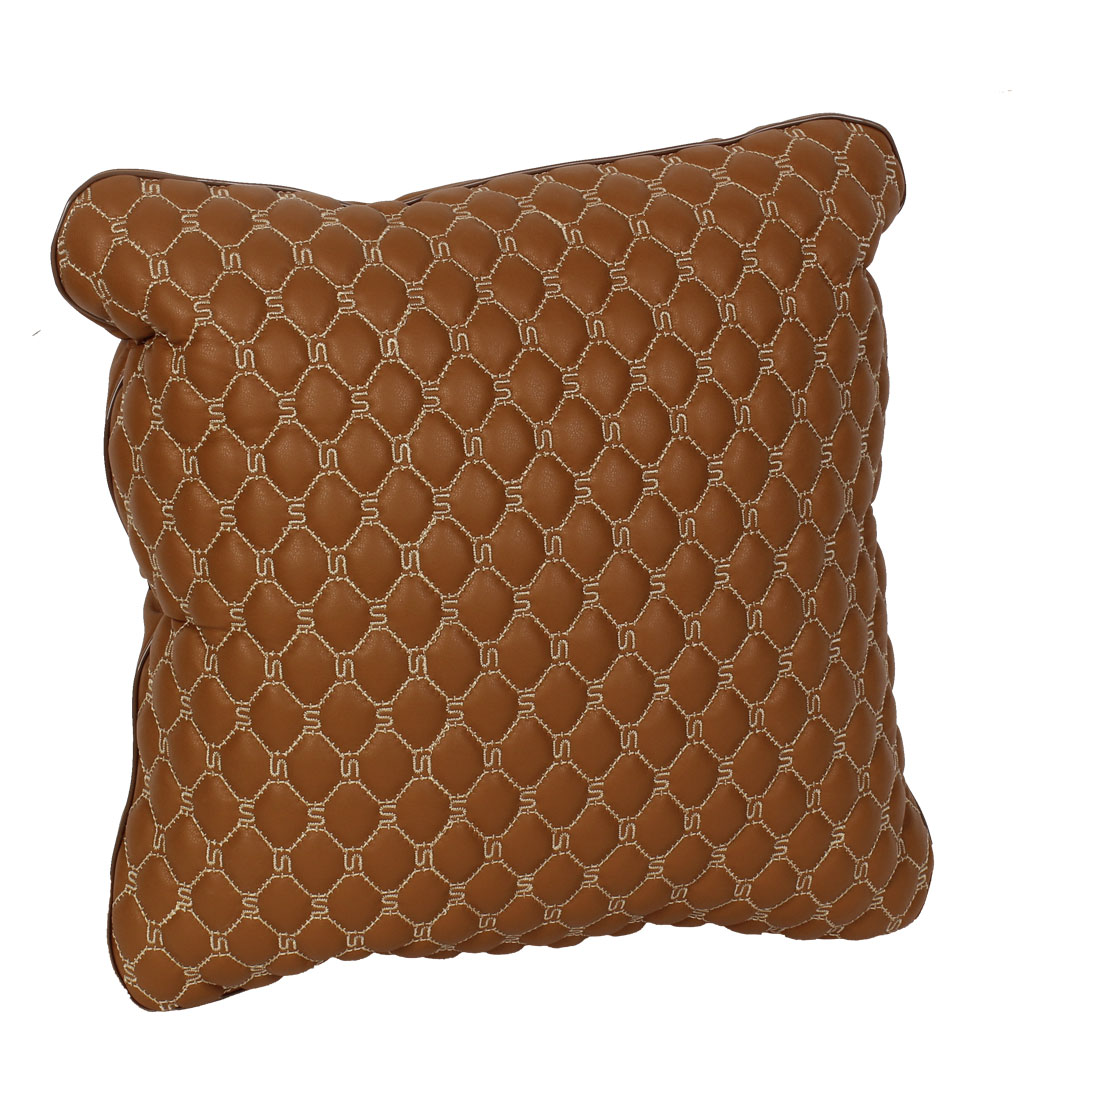 37cm x 35cm Brown Zipper Closure Seat Waist Back Throw Pillow Cushion for Car